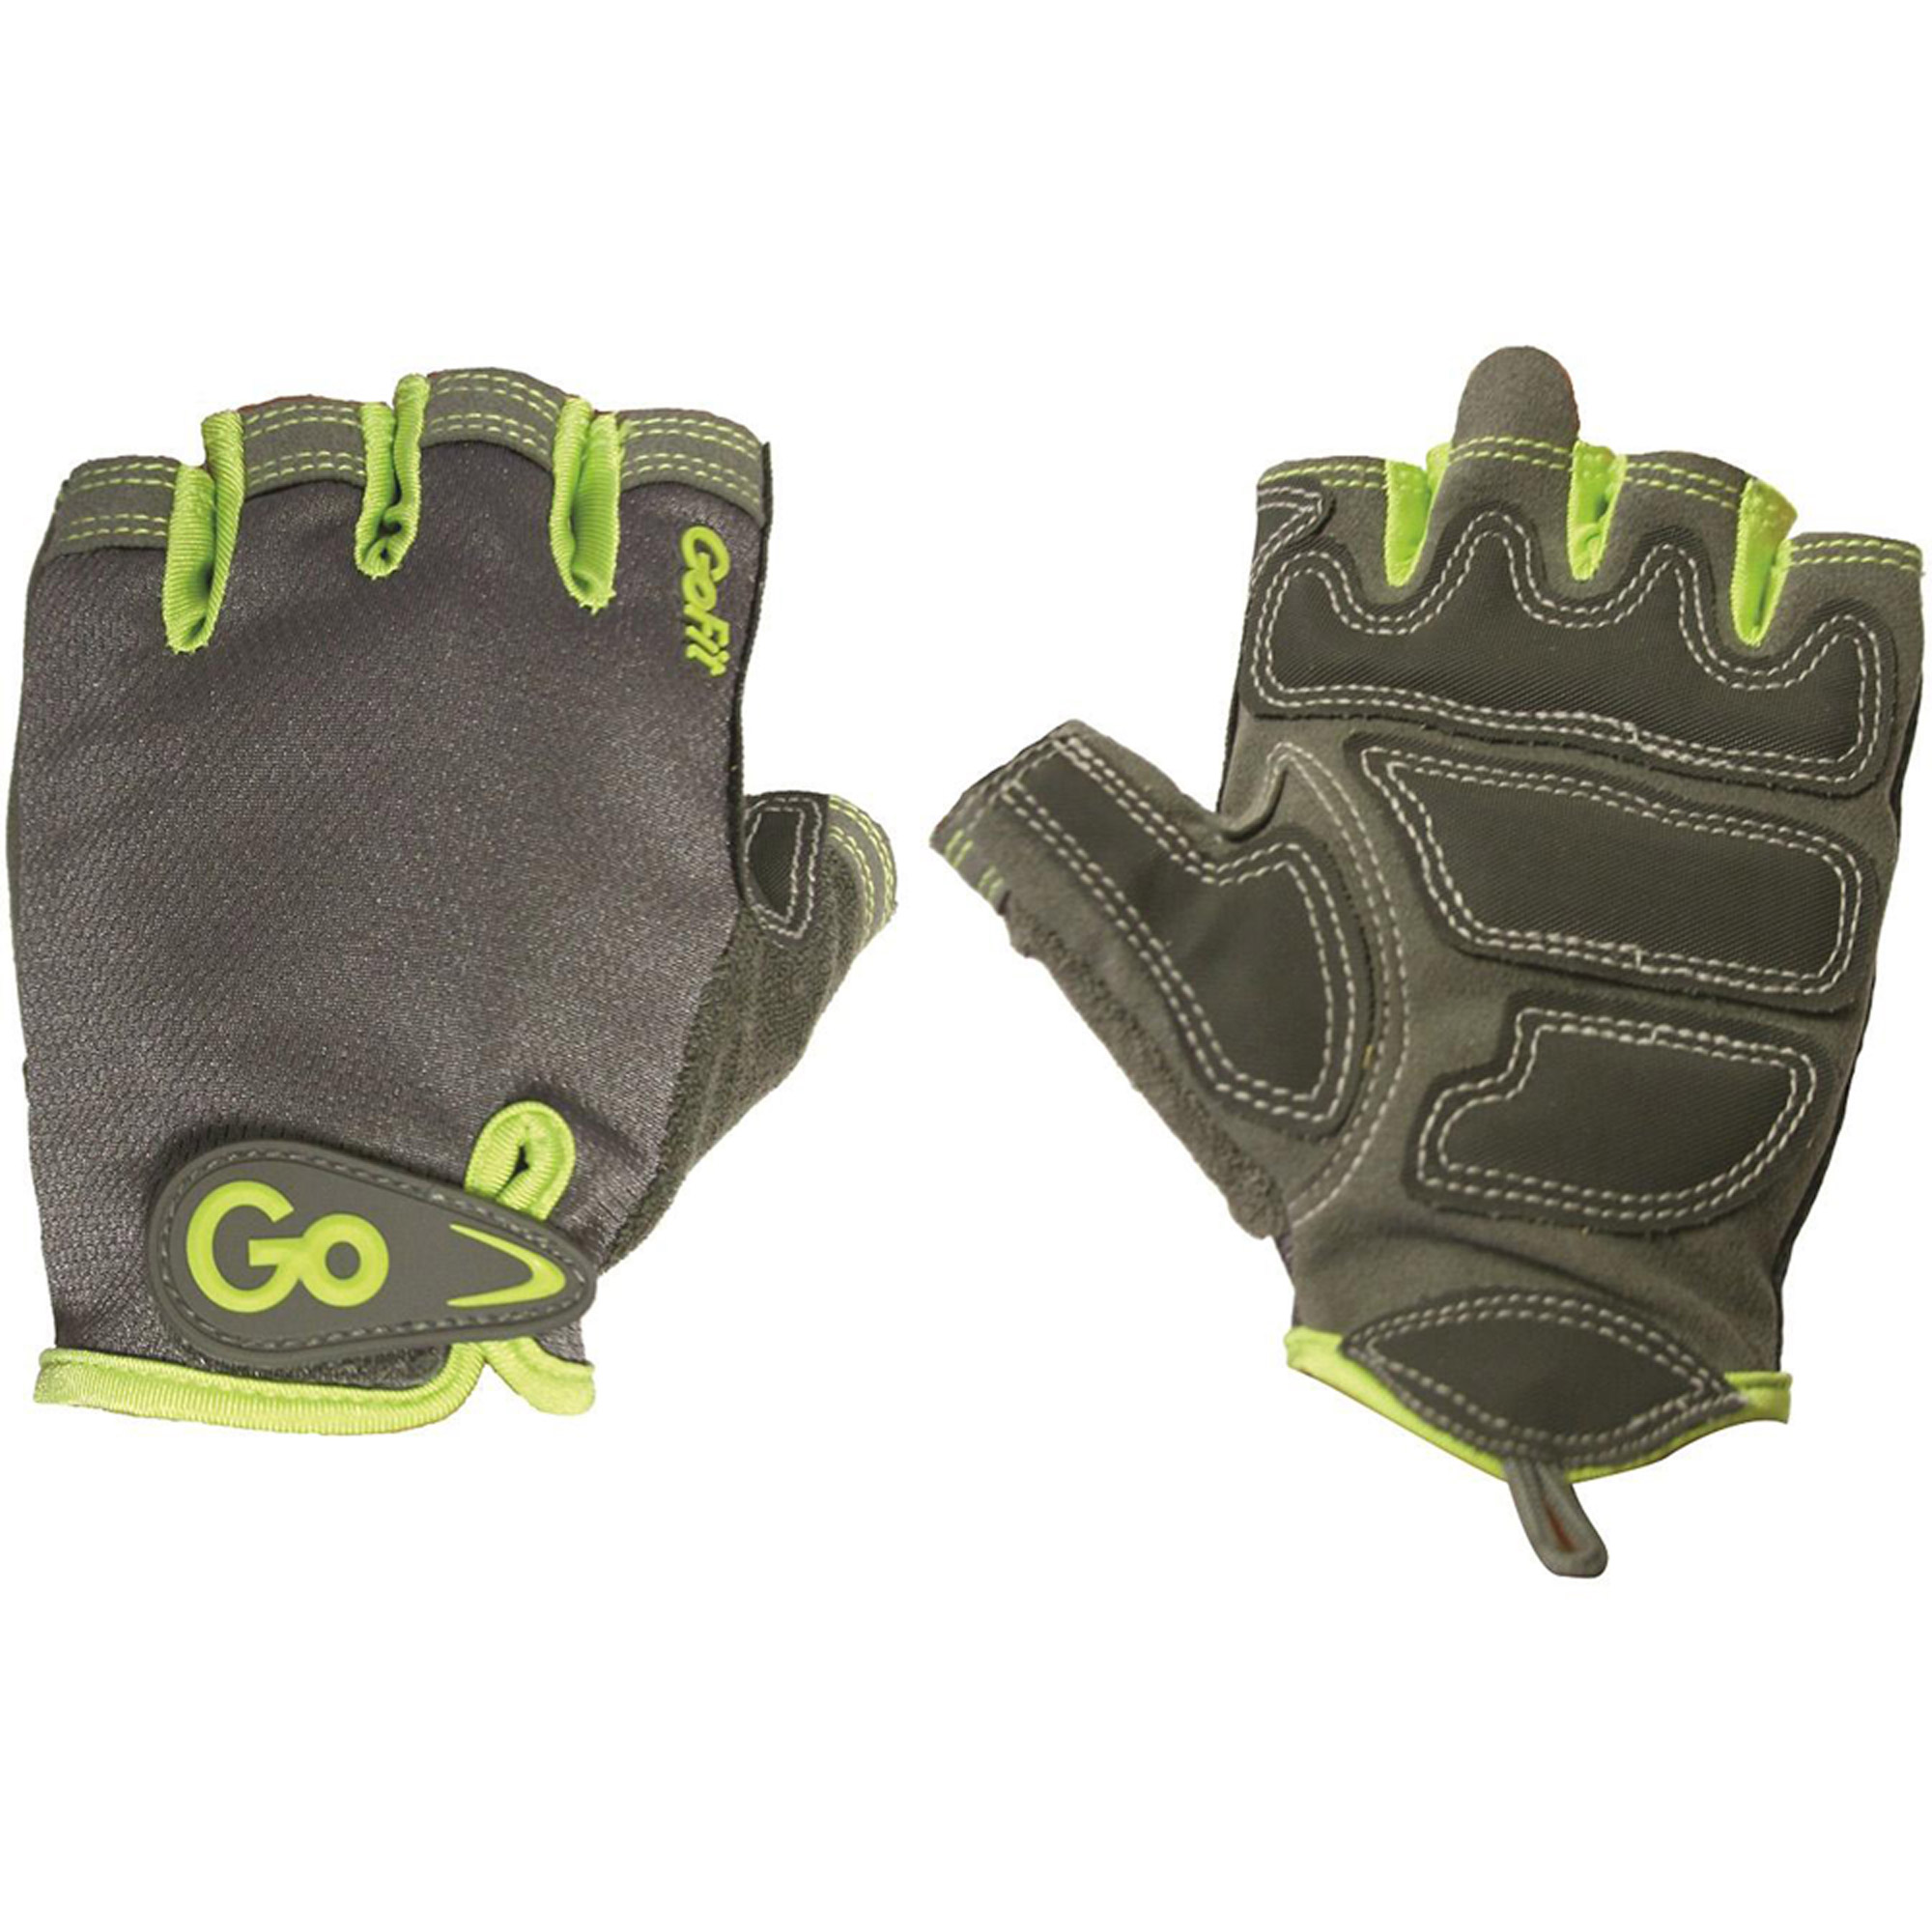 GoFit Women's Pro Sport-Tac Glove, Grey Green Accent by Gofit